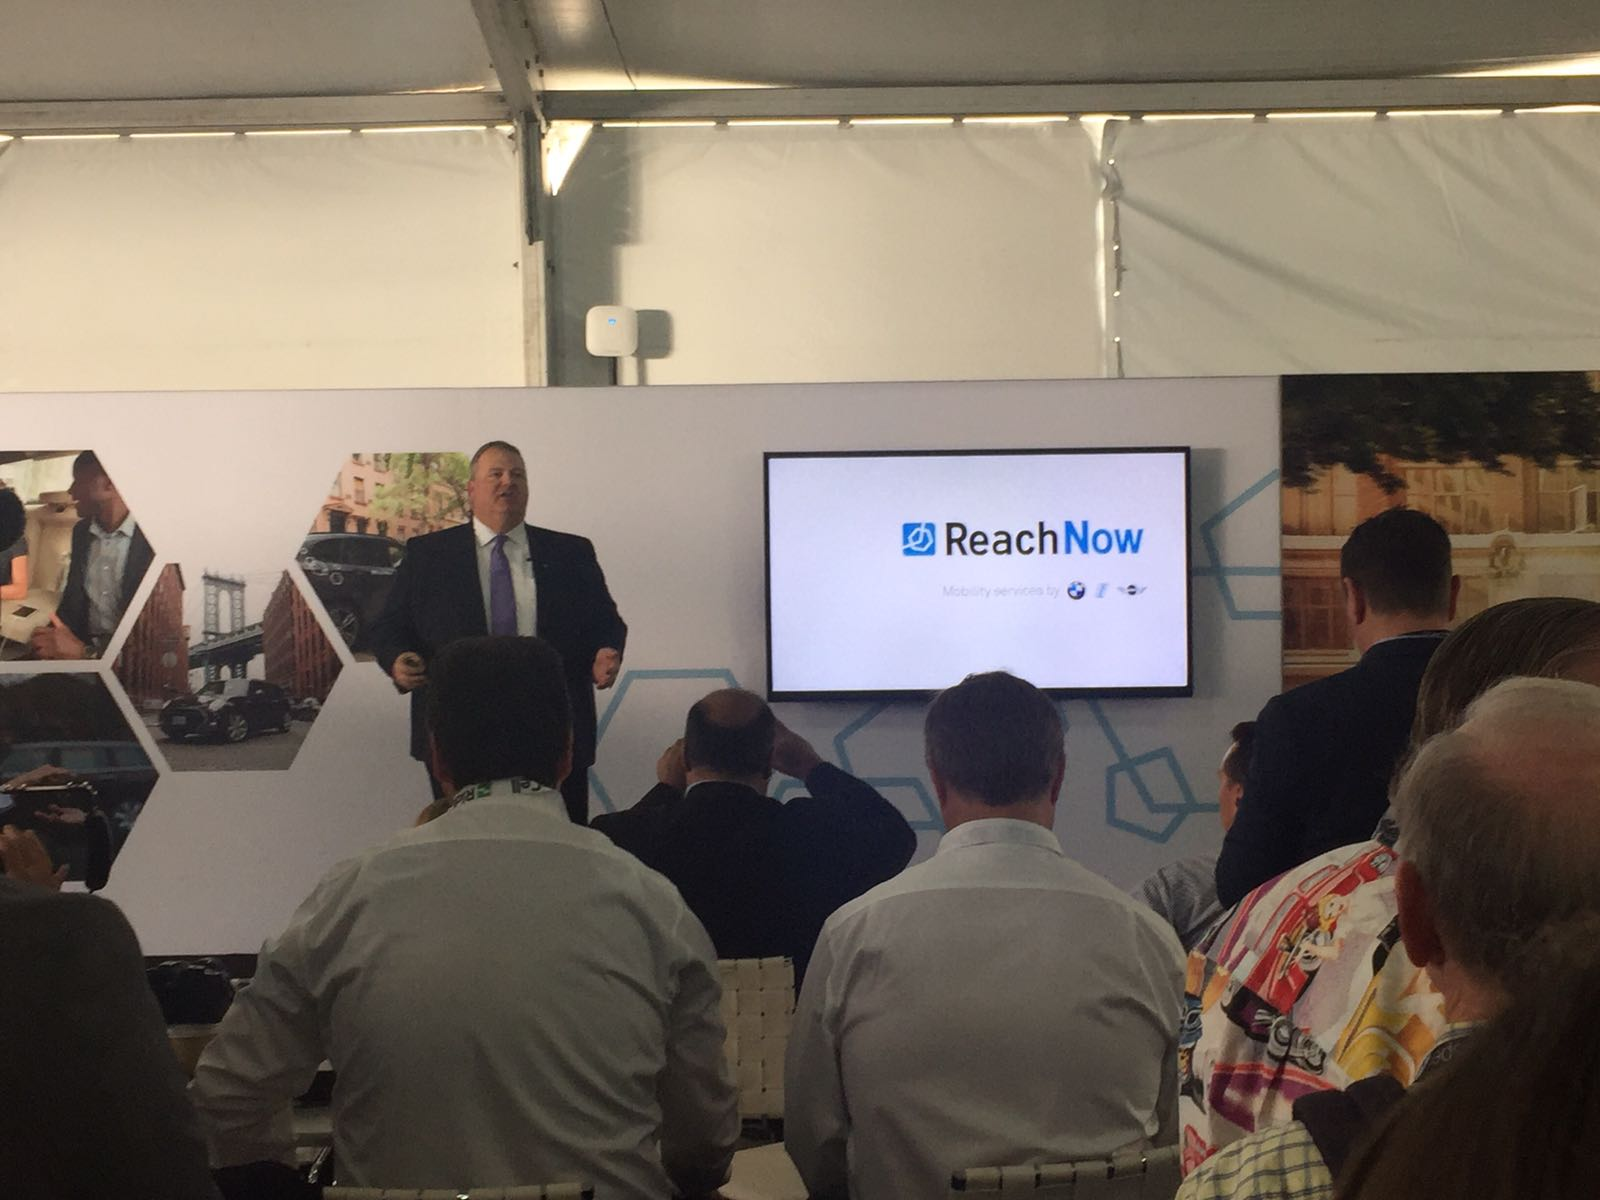 Steve Banfield CEO of BMW ReachNow, speaking at LA AutoMobility. BMW's alternative mobility platform announced its expansion into Brooklyn, NY and debute its solutions for residential buildings.  Brooklyn is ReachNow's first foothold into the American East Coast.